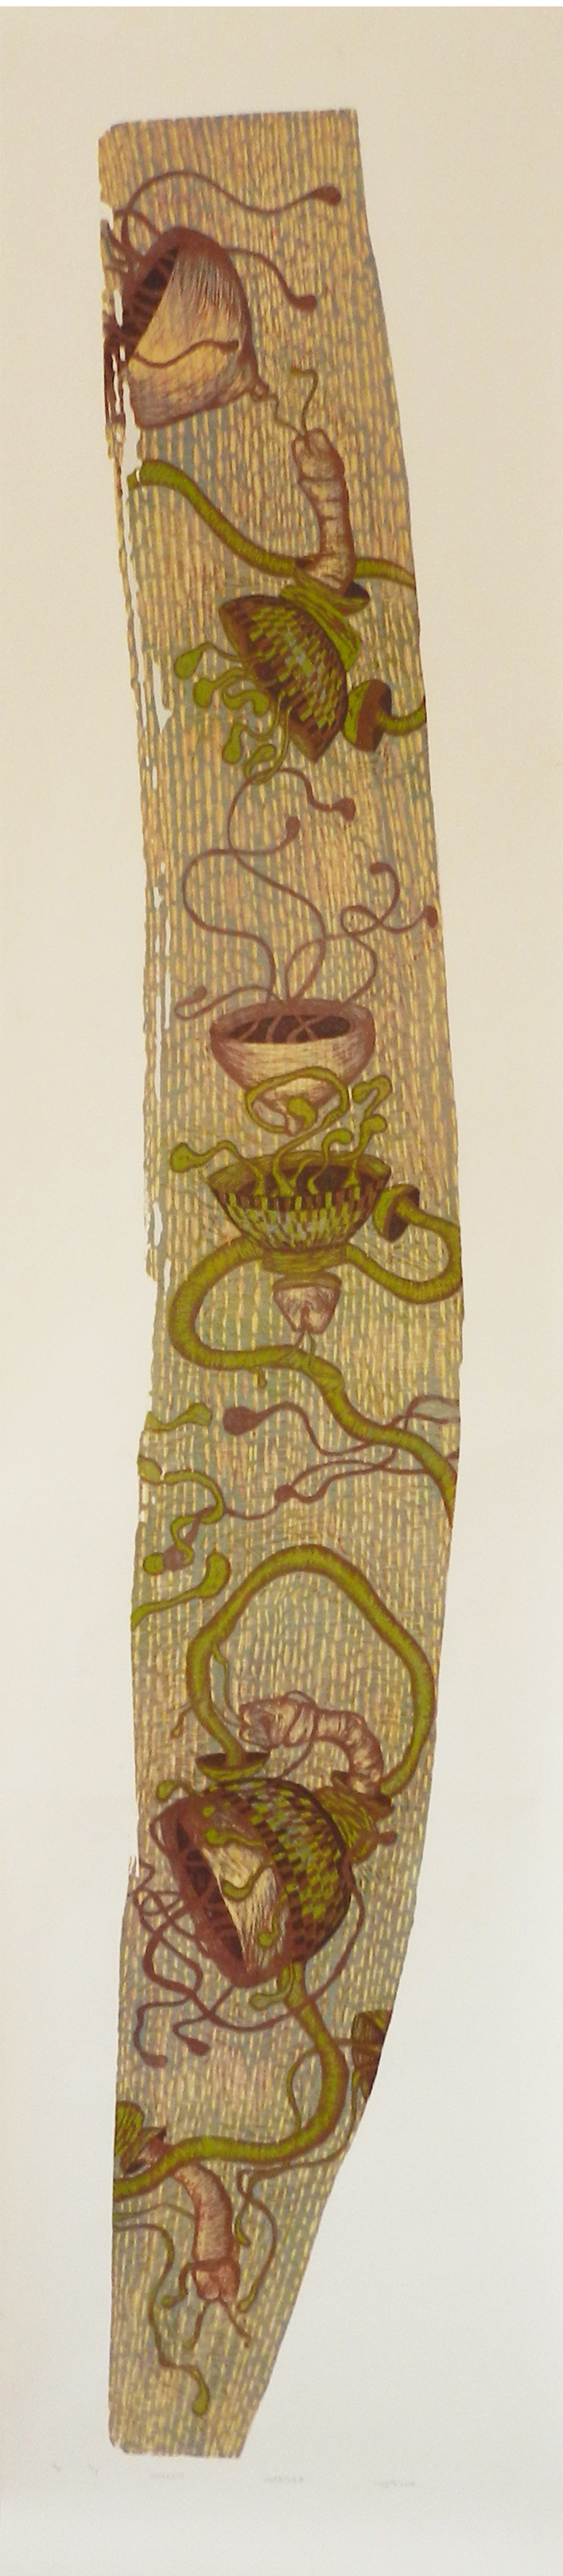 Untitled by Lajja Shah, Expressionism Printmaking, Wood Cut on Paper, Beige color